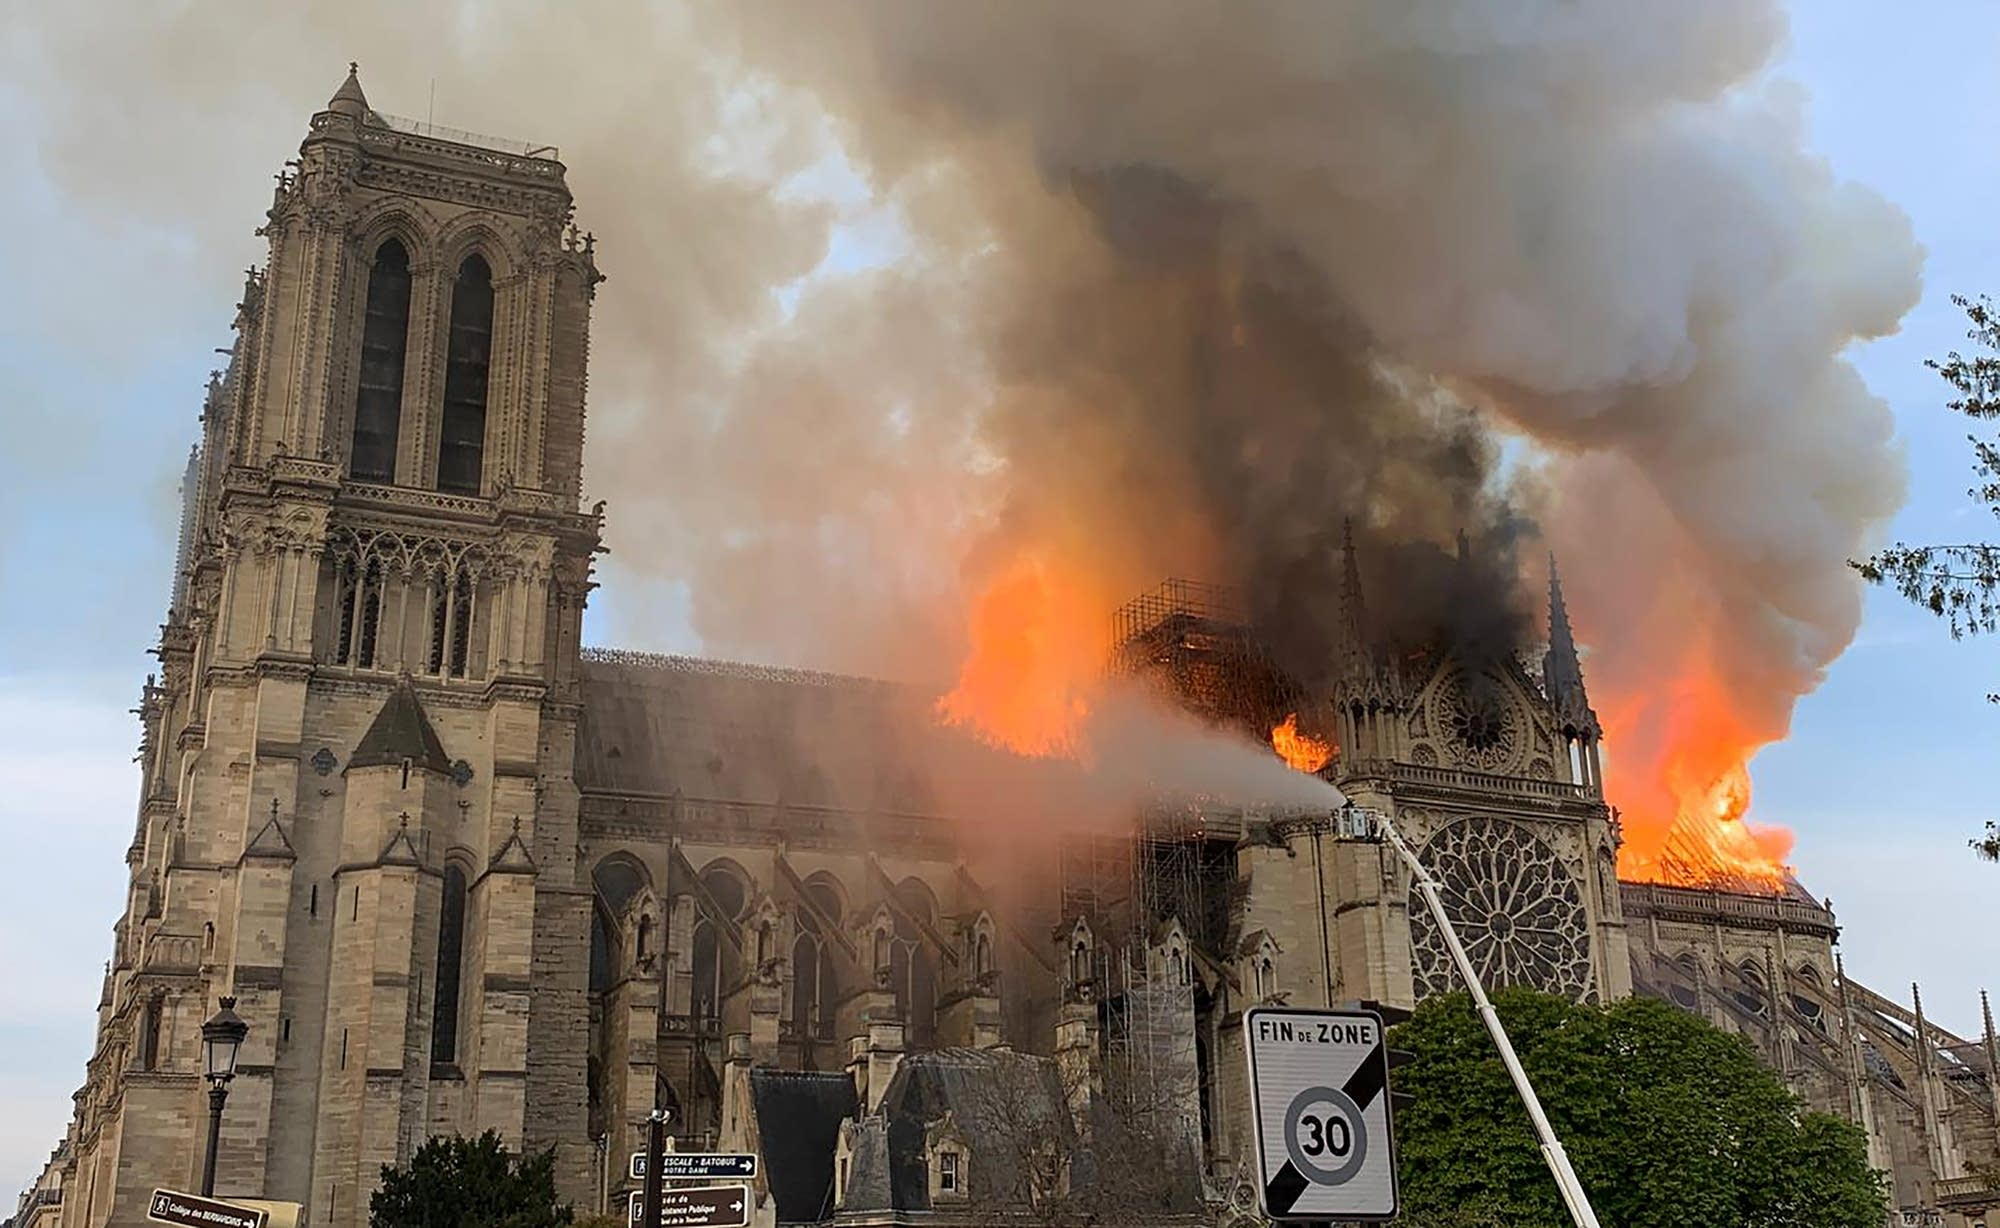 Flames and smoke are seen billowing from the roof at Notre Dame Cathedral